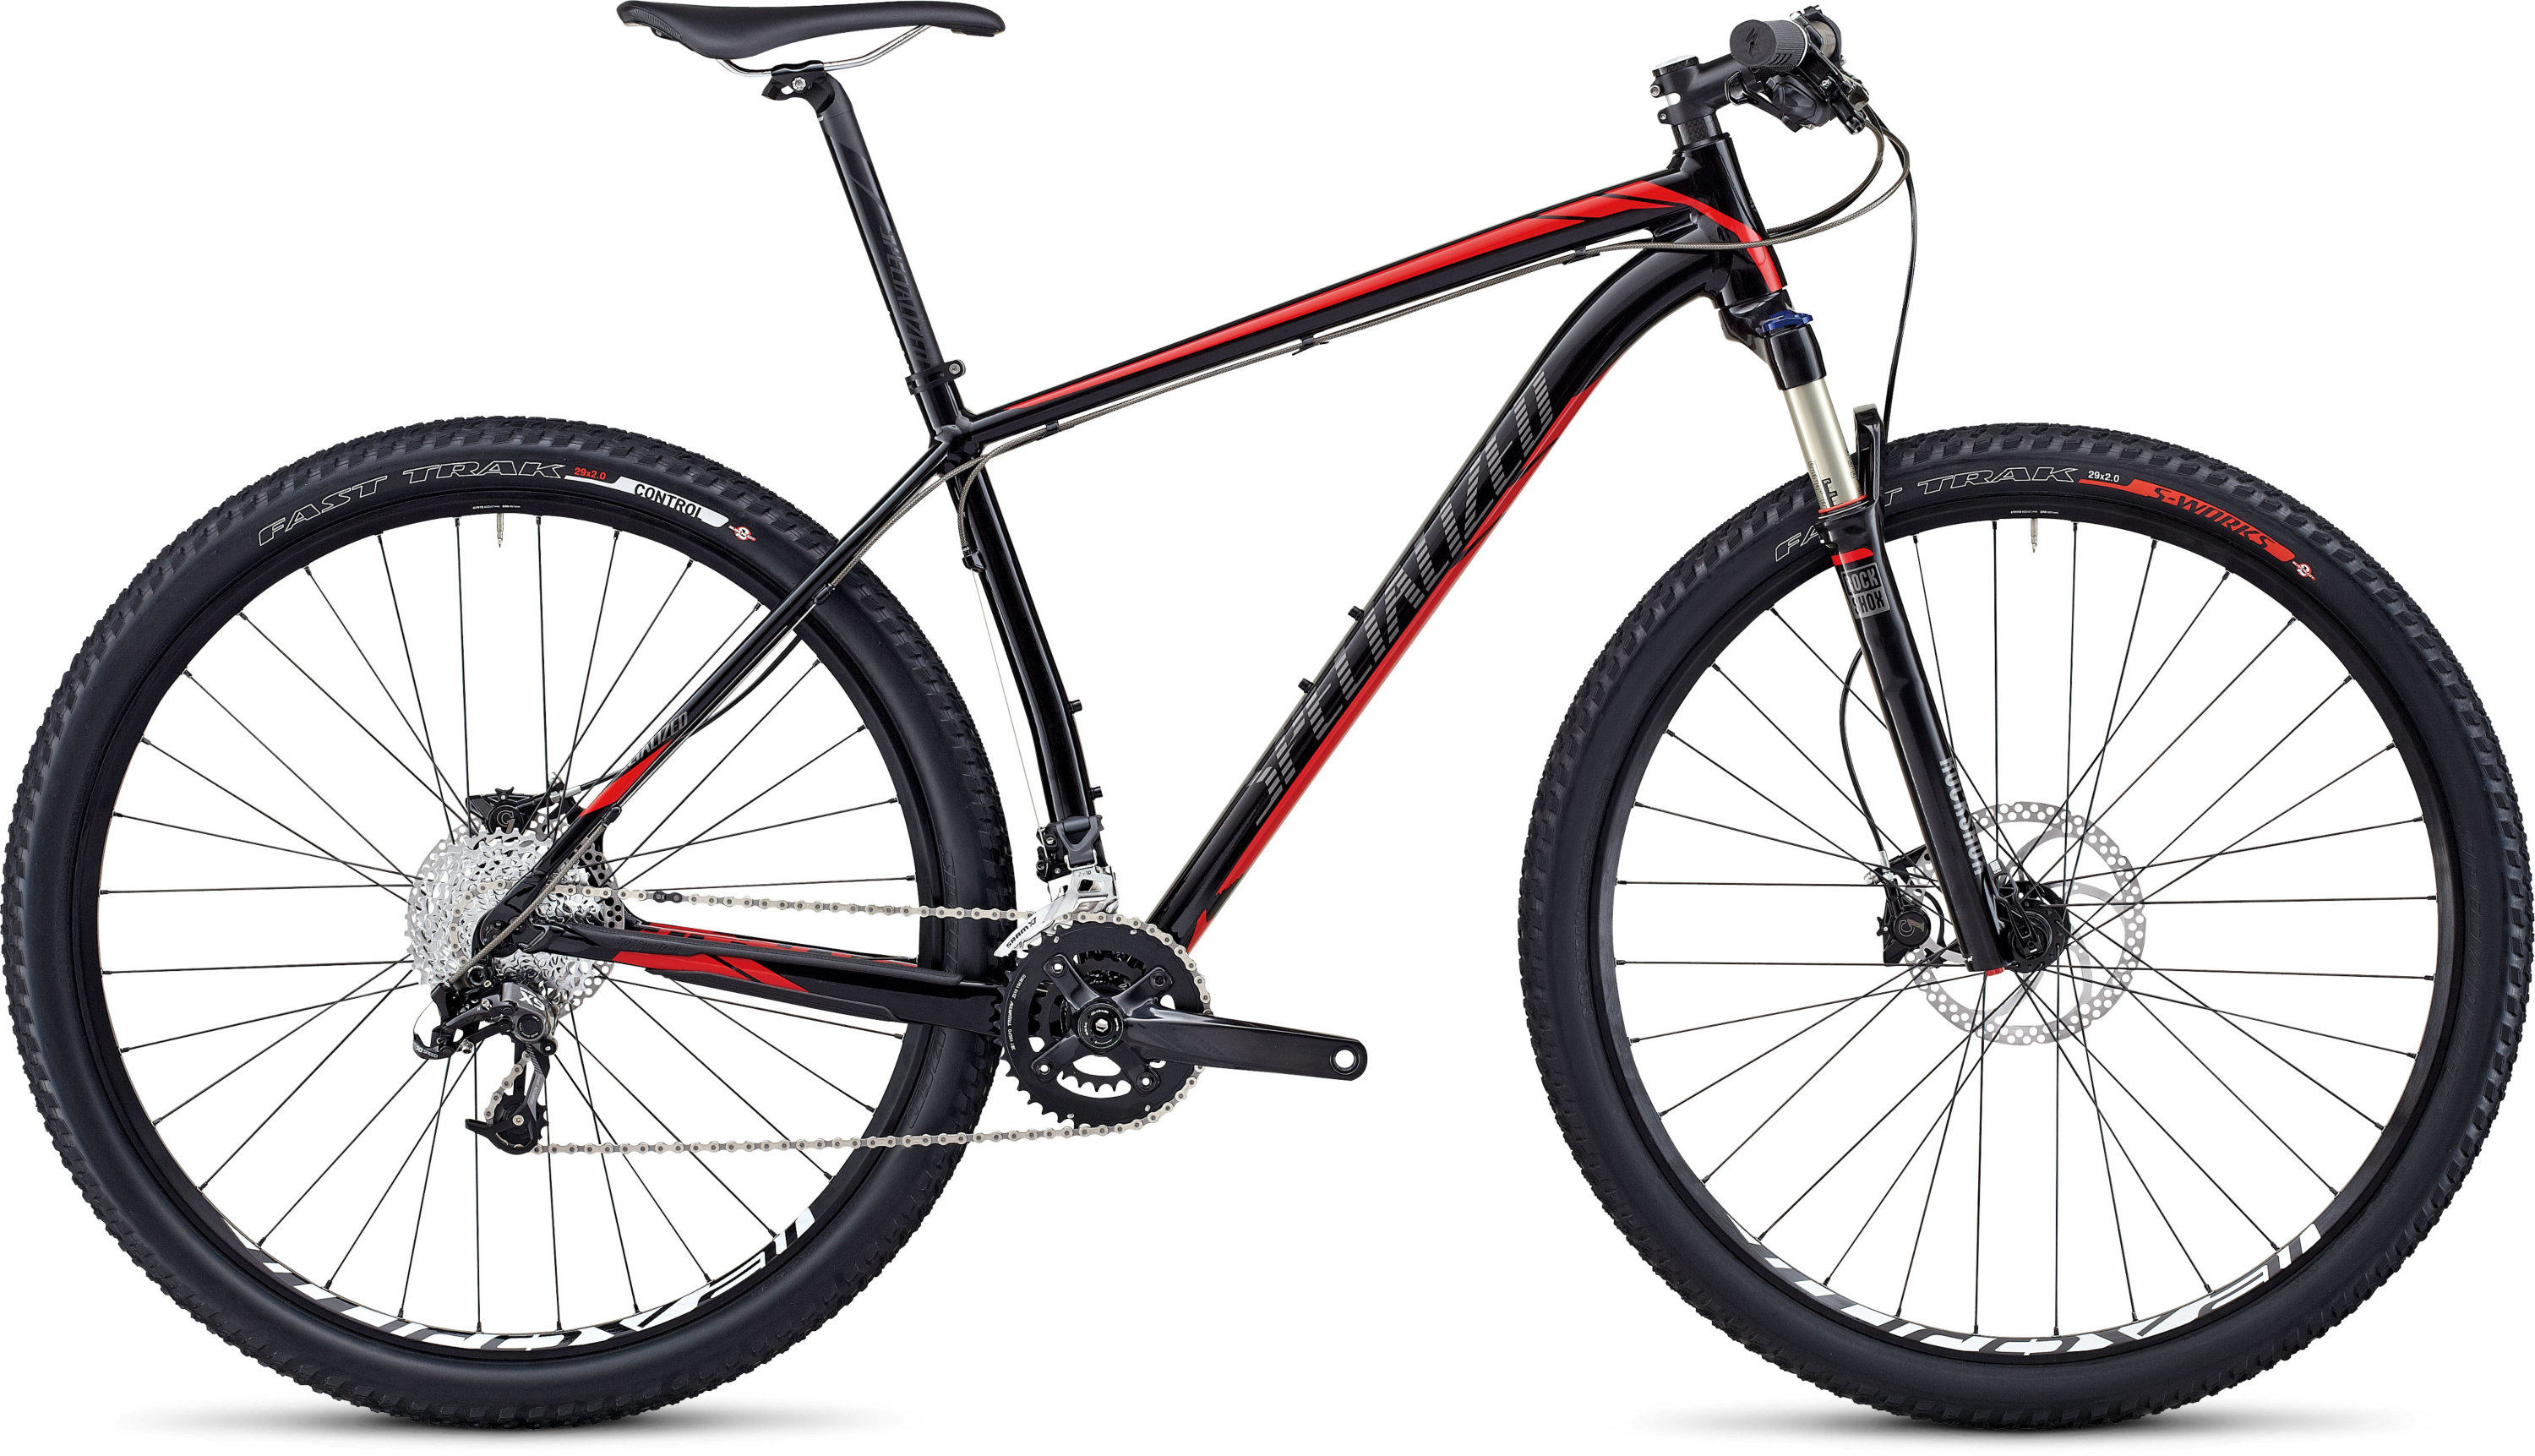 Stumpjumper Comp 29 | Specialized.com